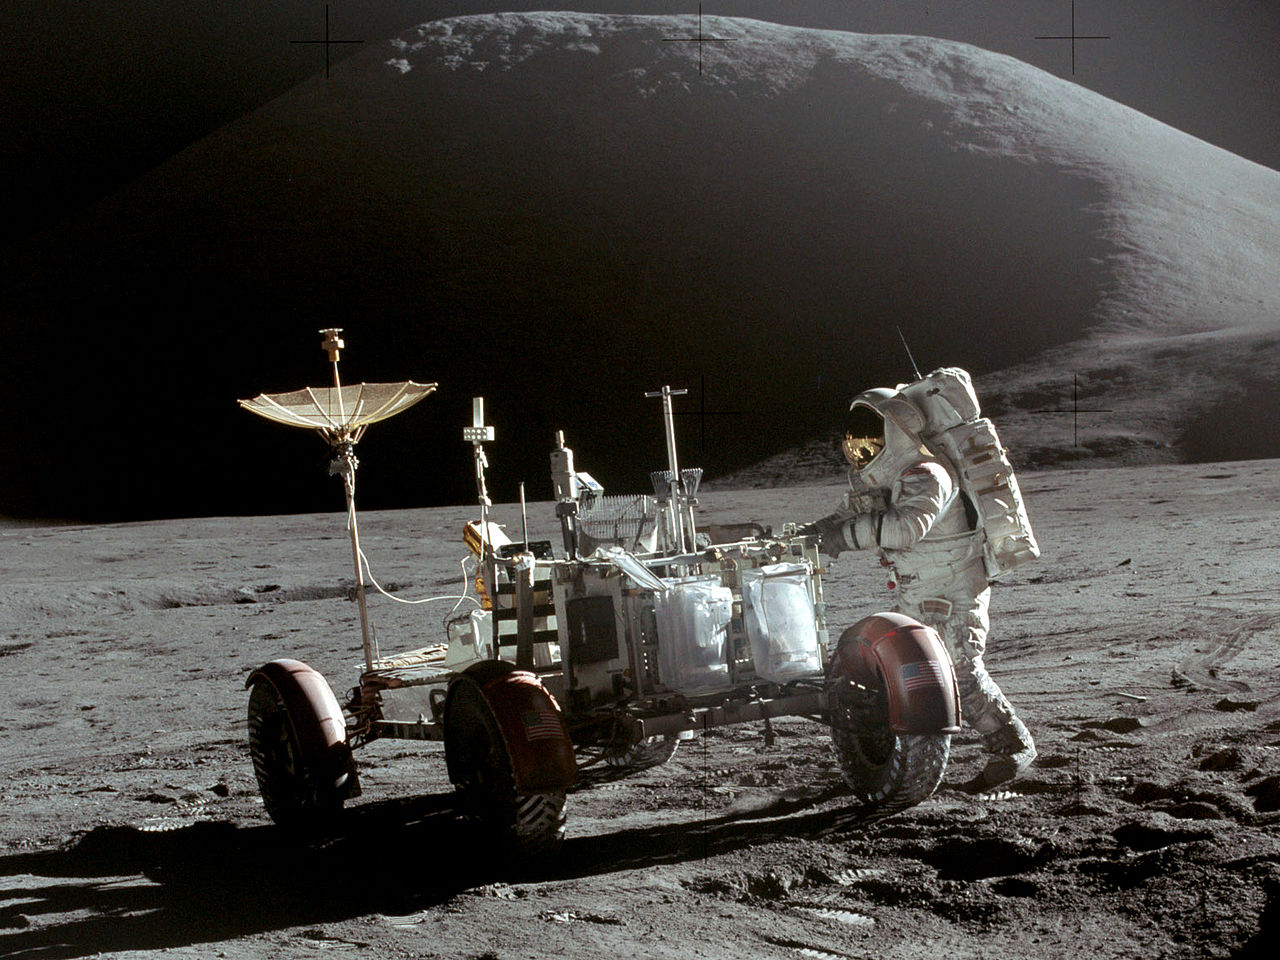 Astronaut Jim Irwin of Apollo 15 with the Apennines mountains in the background (credit:- NASA)